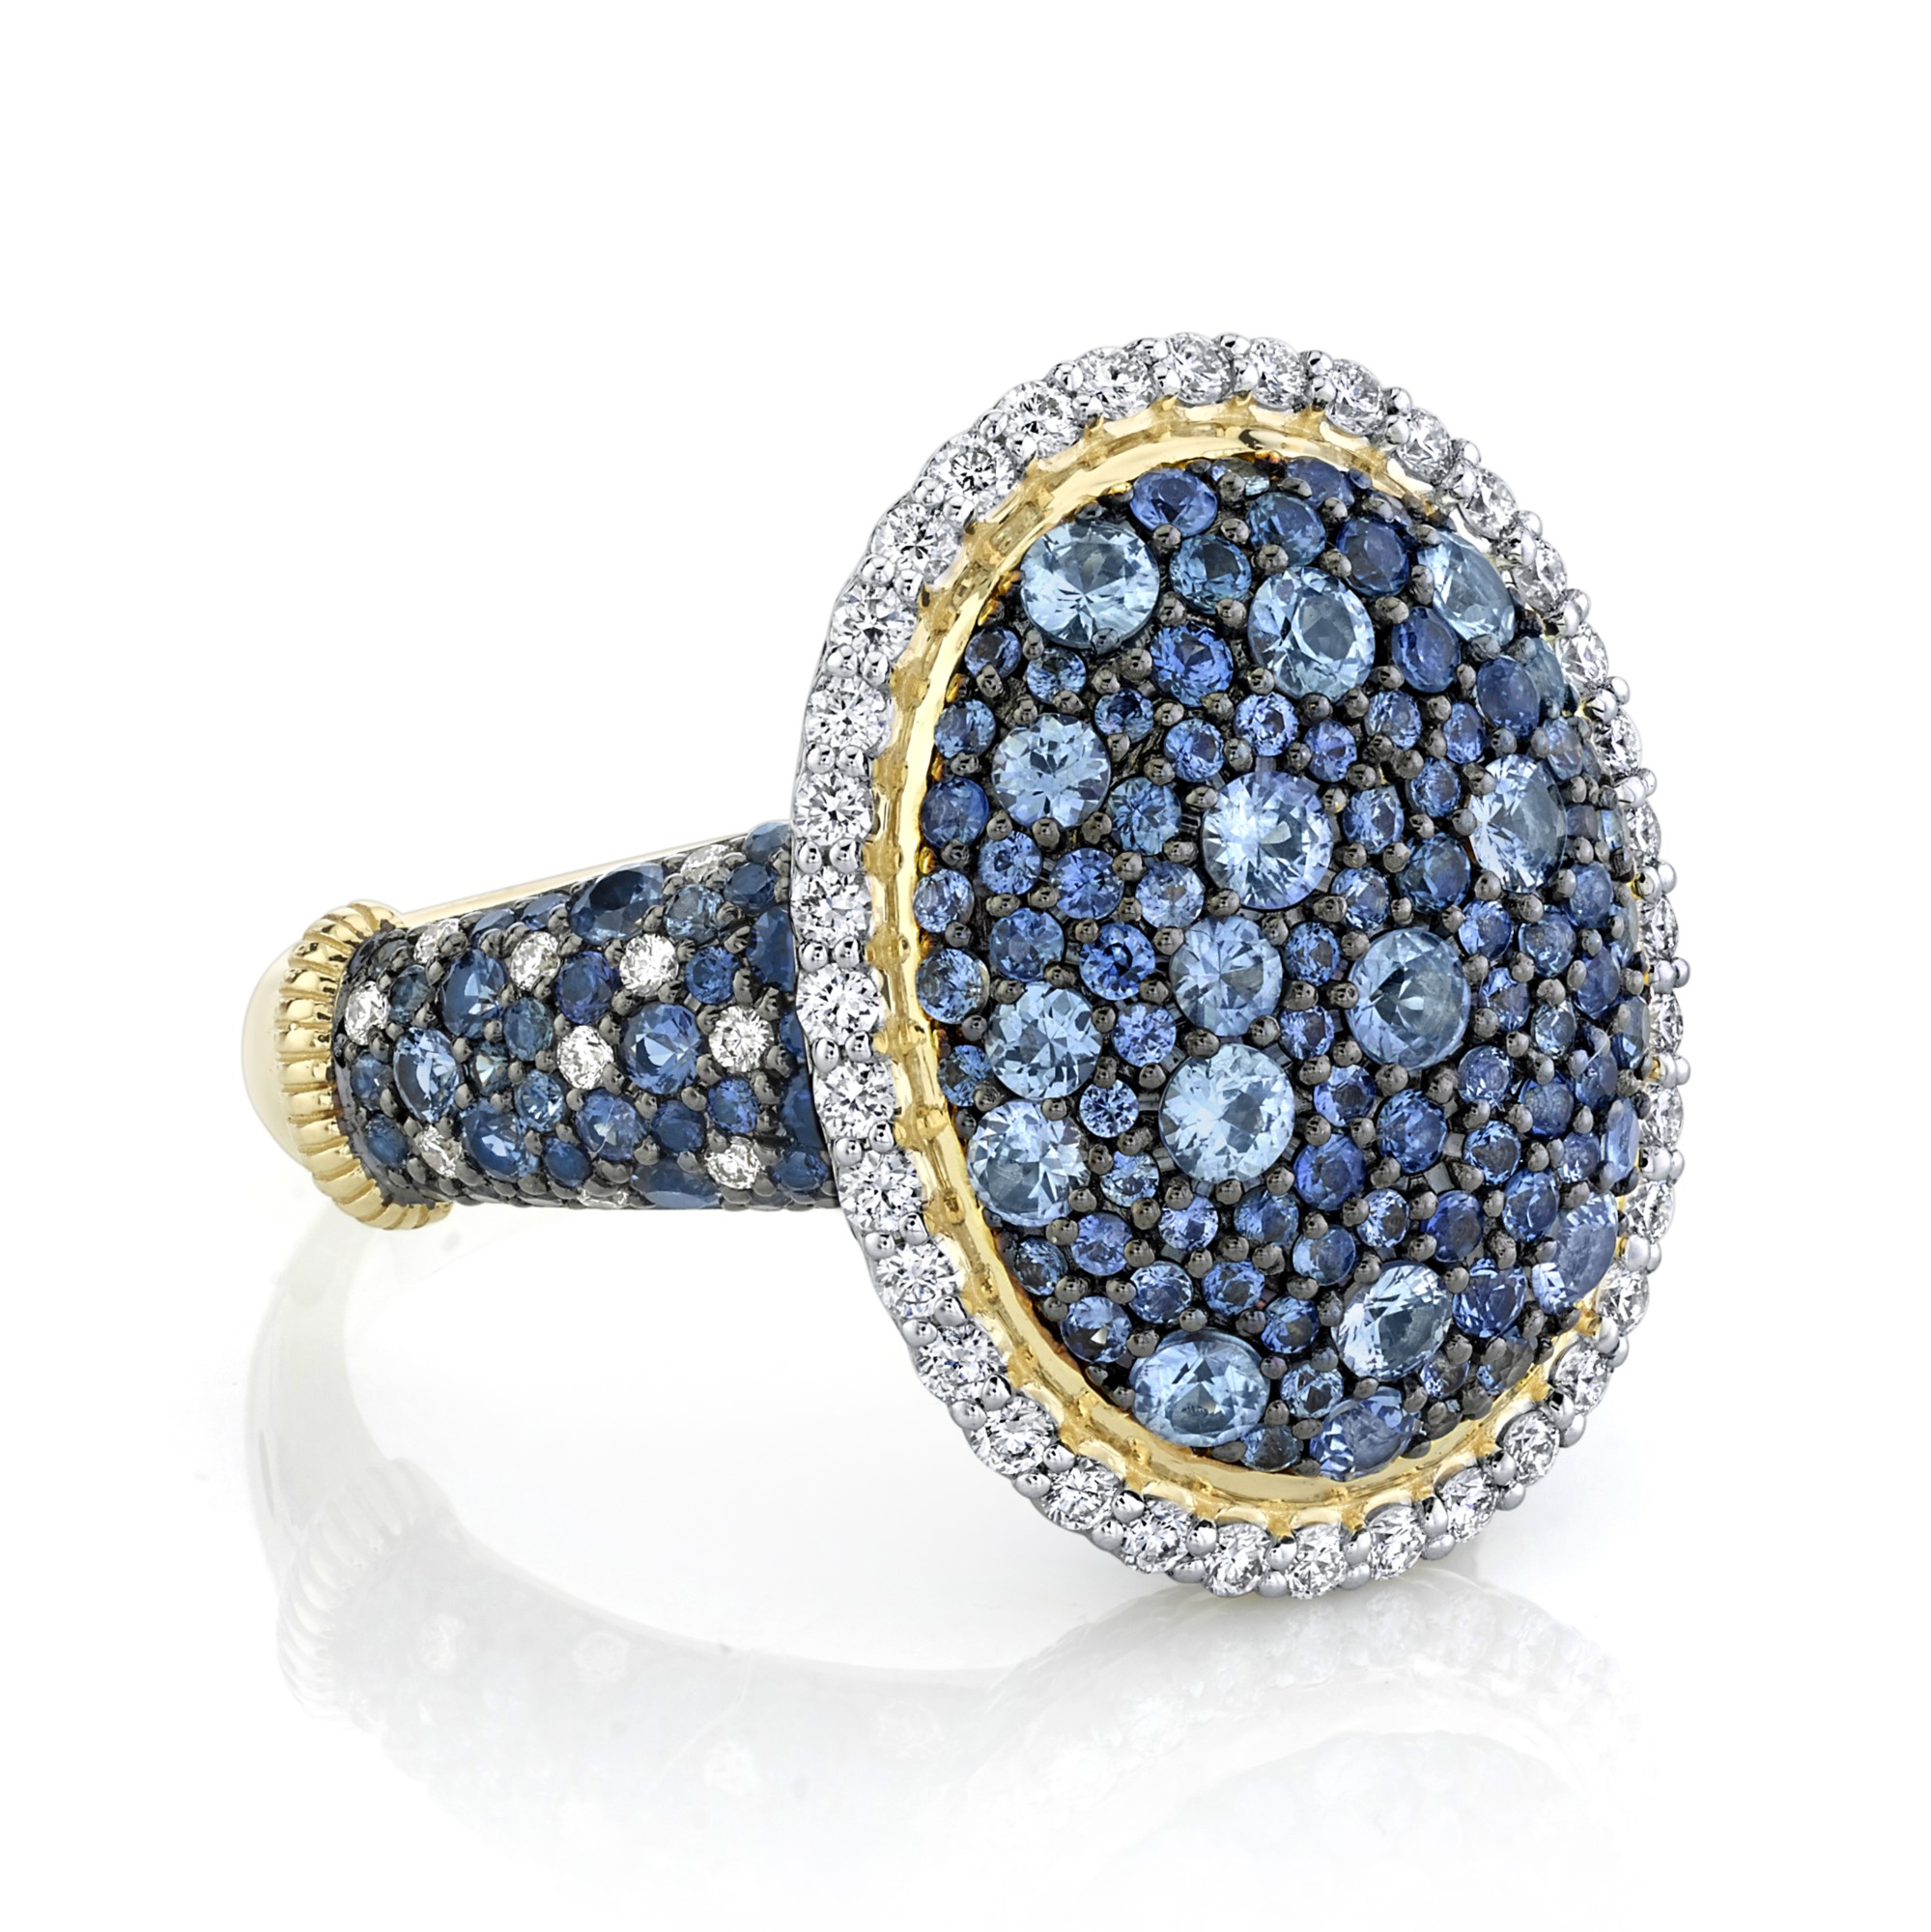 Sloane Street 18K Yellow Gold .79cts  Diamonds Gold Ring with Stones R039F-GBSBR-WDCB-Y